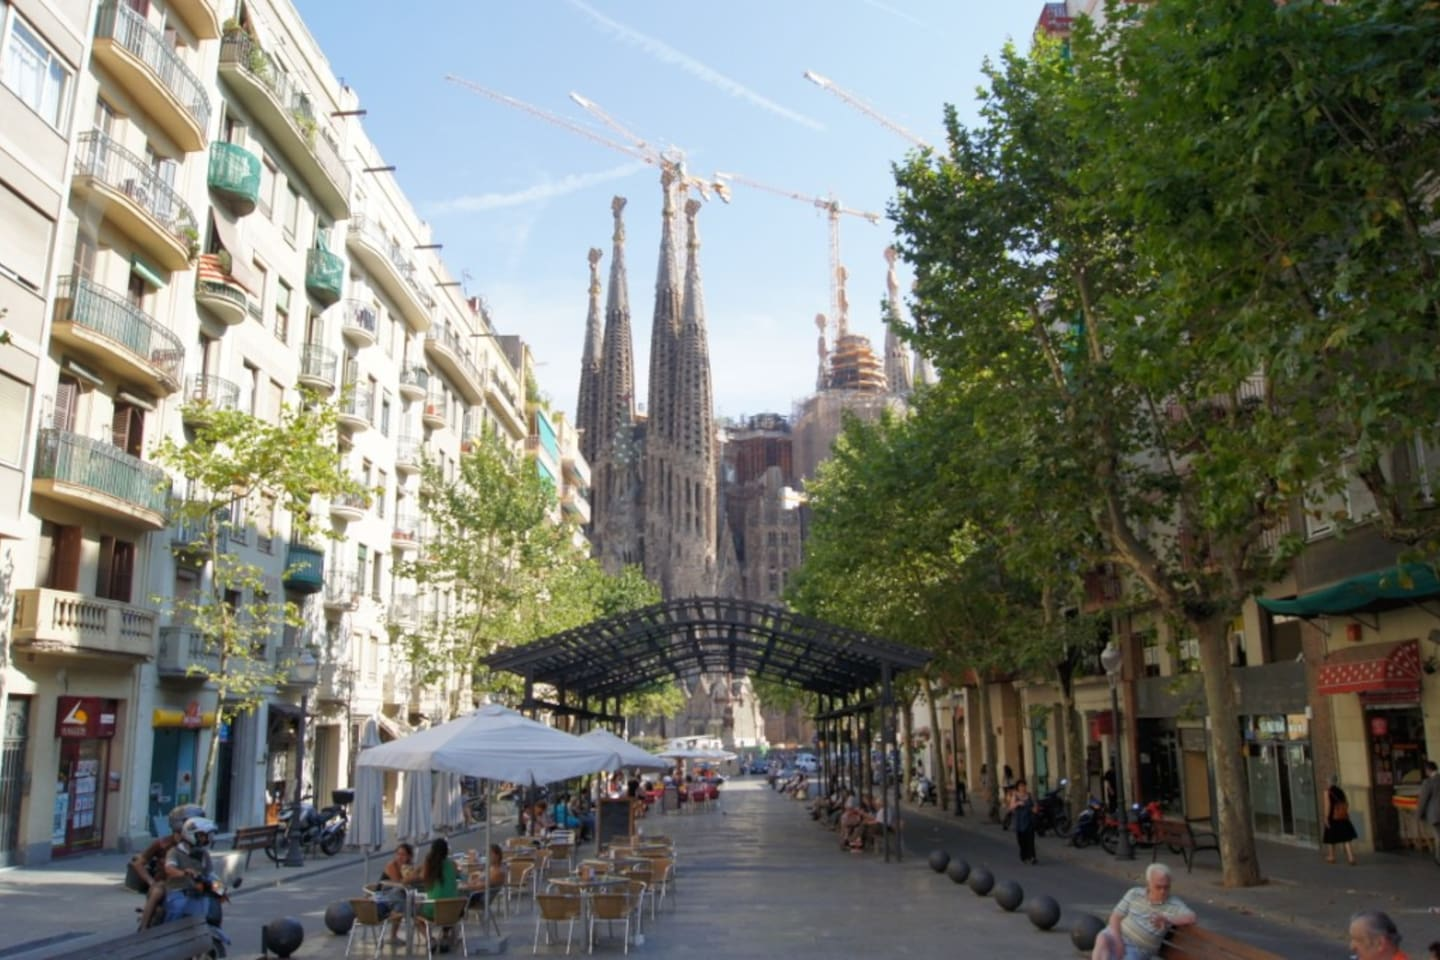 Avinguda Gaudi, pedestrian street with shops and restaurants.